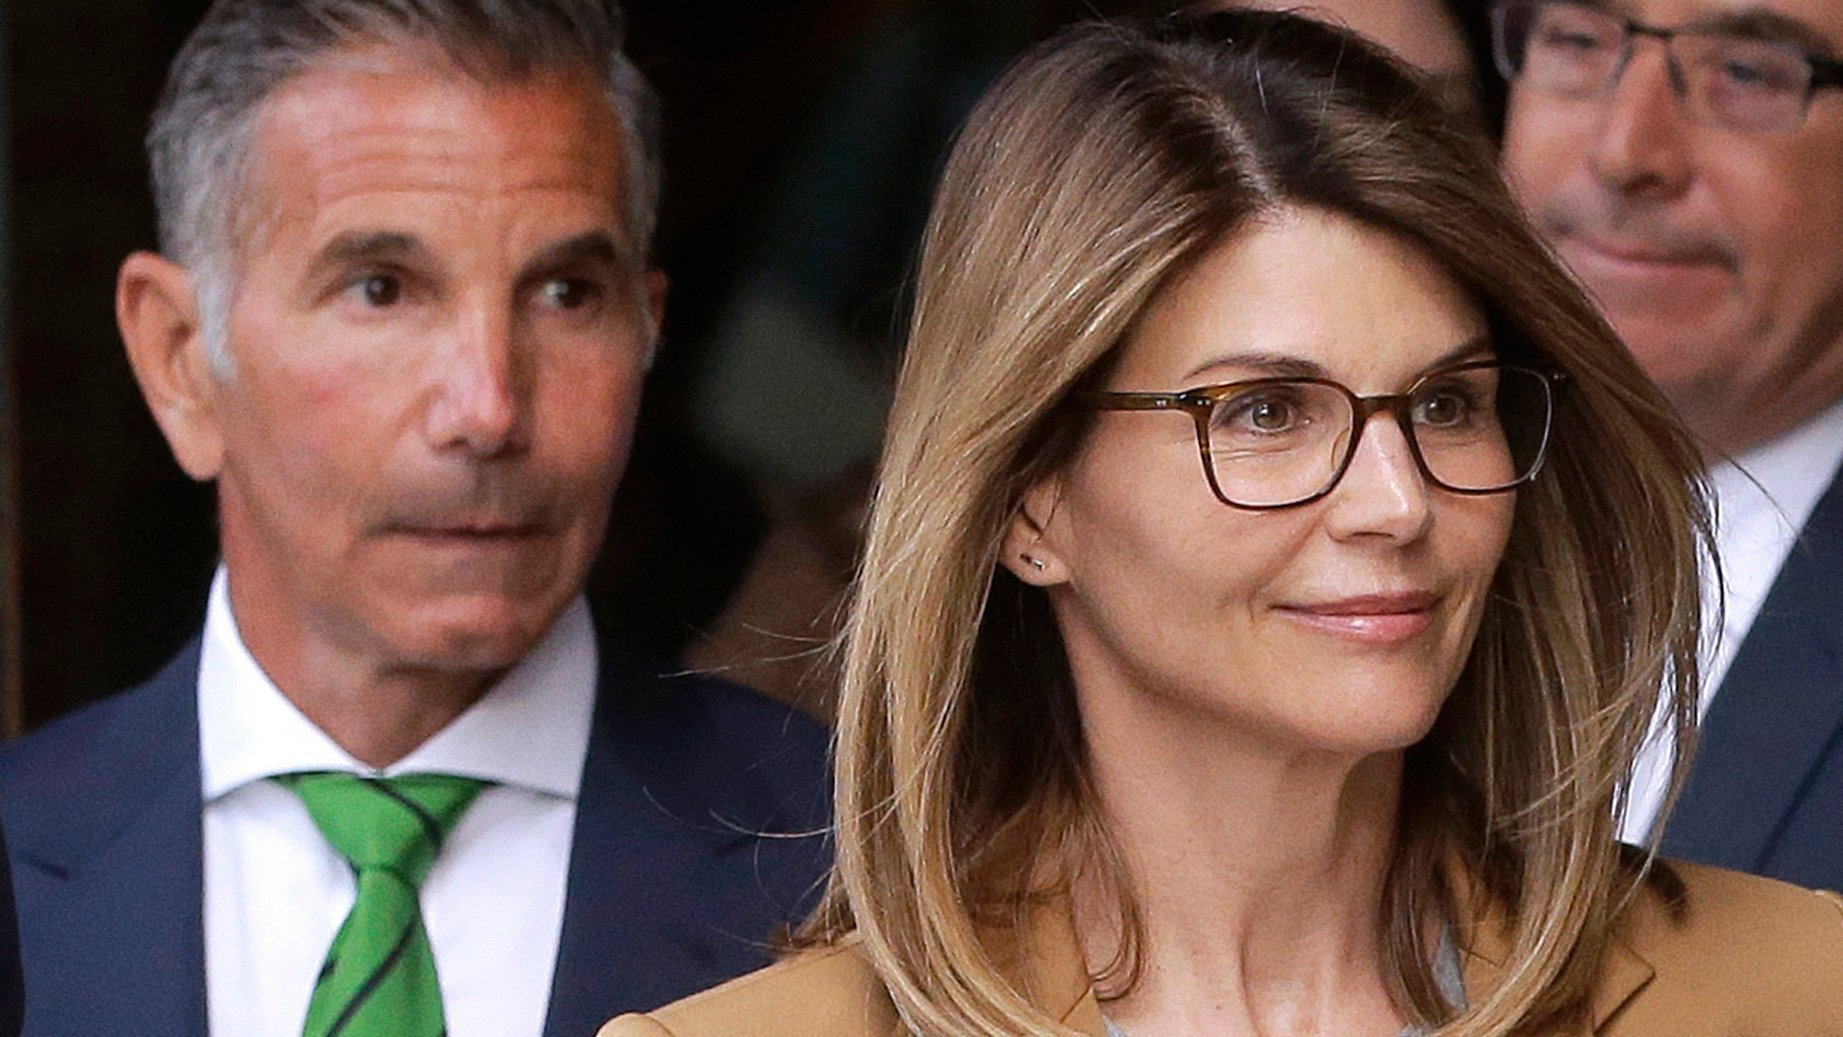 Fashion designer Mossimo Giannulli, left, leaves a federal courthouse in Boston behind his wife, actress Lori Loughlin, on April 3, 2019. (Pat Greenhouse / The Boston Globe via Getty Images)